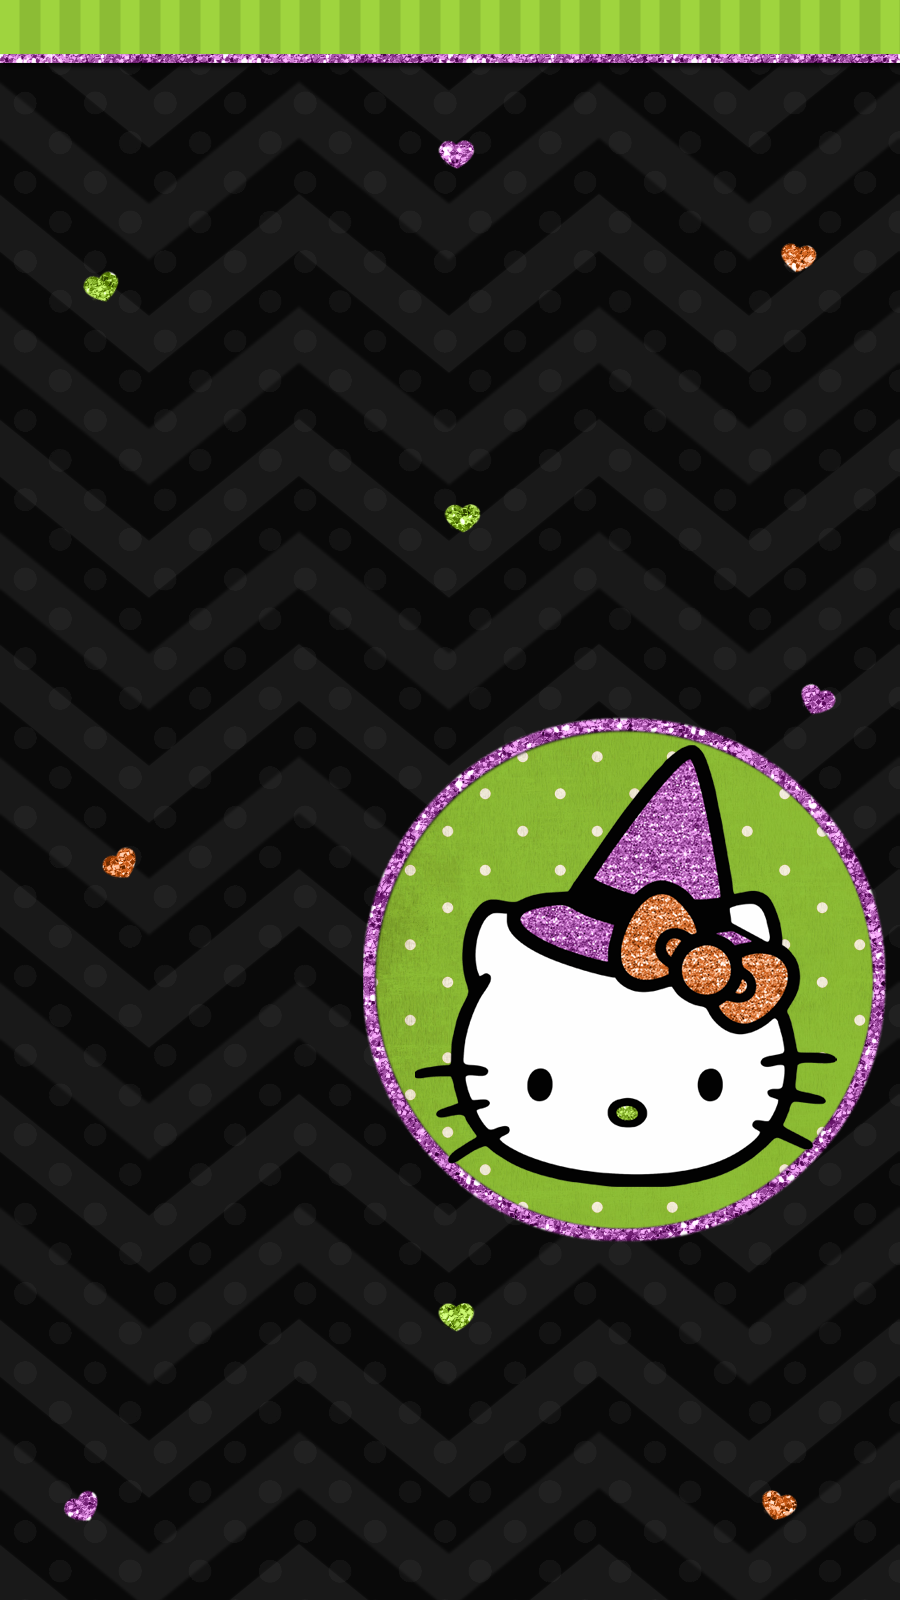 Amazing Wallpaper Hello Kitty Halloween - 700b4359cac13455dc4260a59c58226d  Snapshot_5957.png